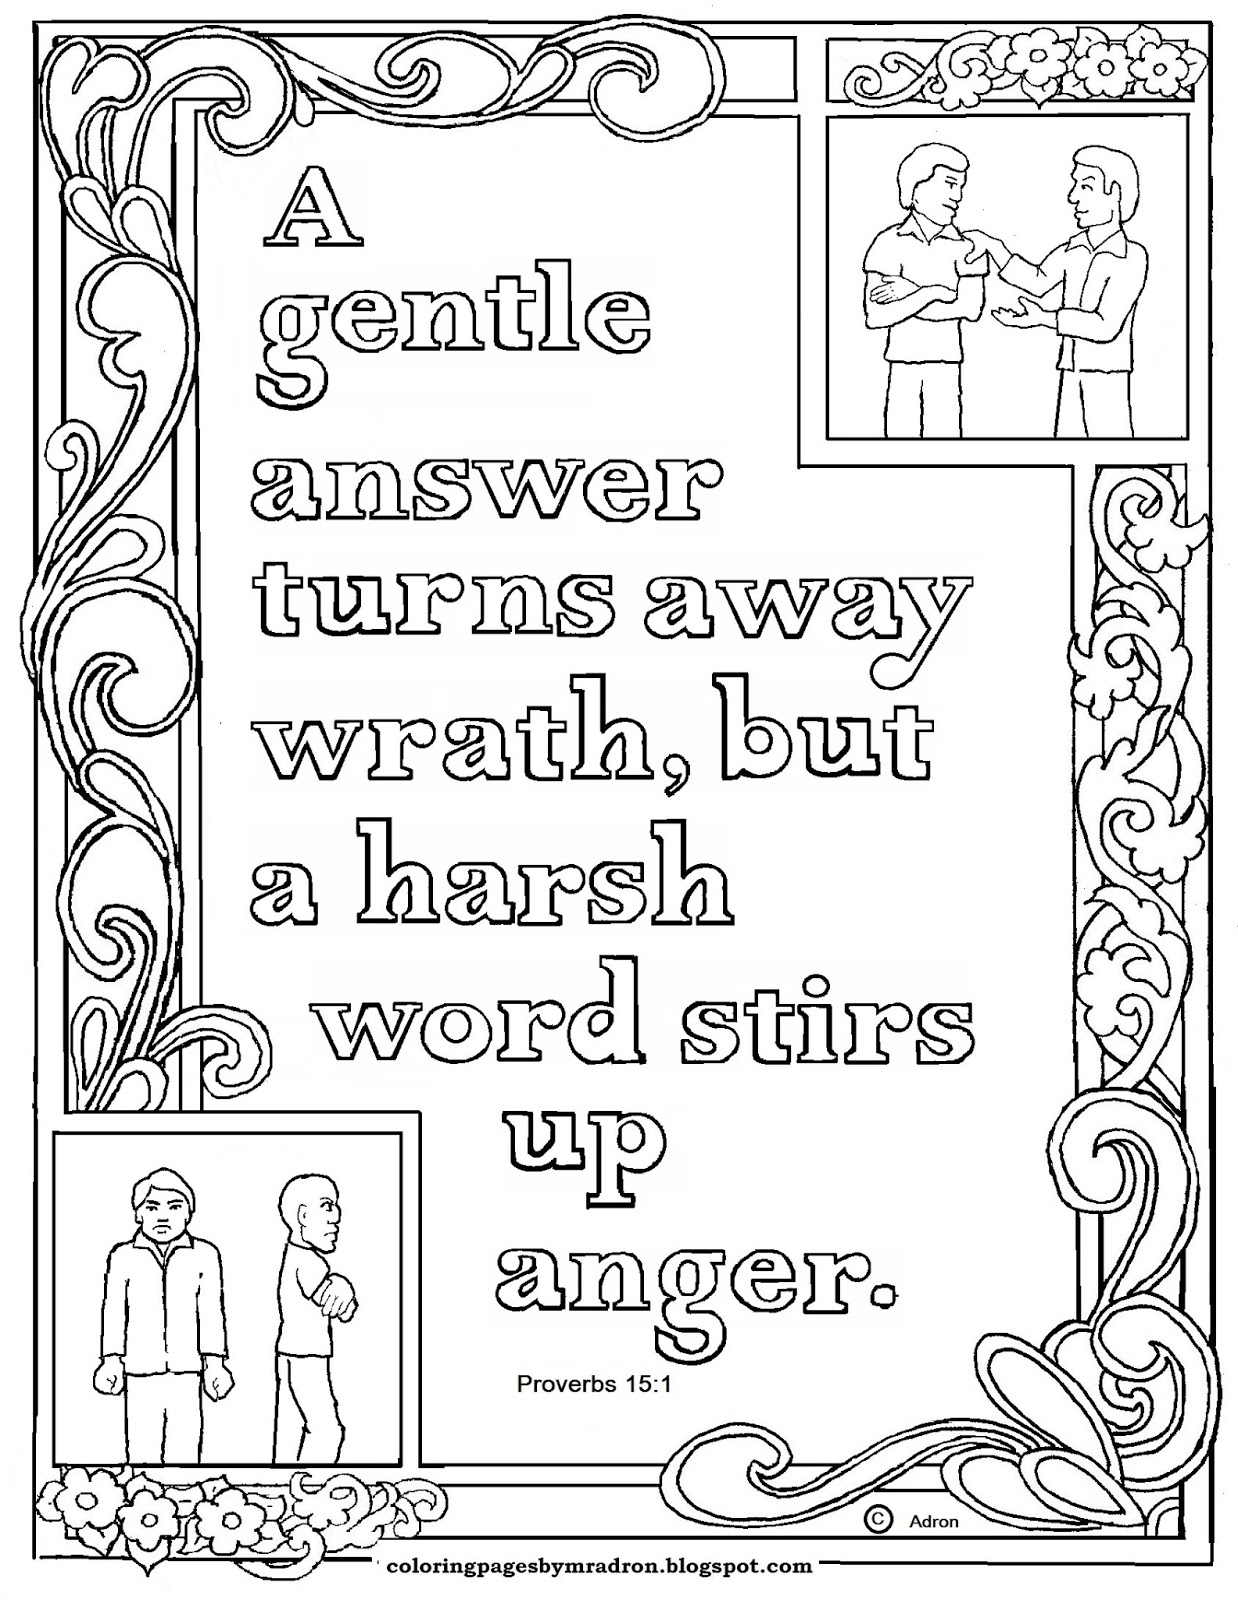 Coloring Pages For Kids By Mr Adron Proverbs 15 1 Print And Color Page A Soft Answer Turns